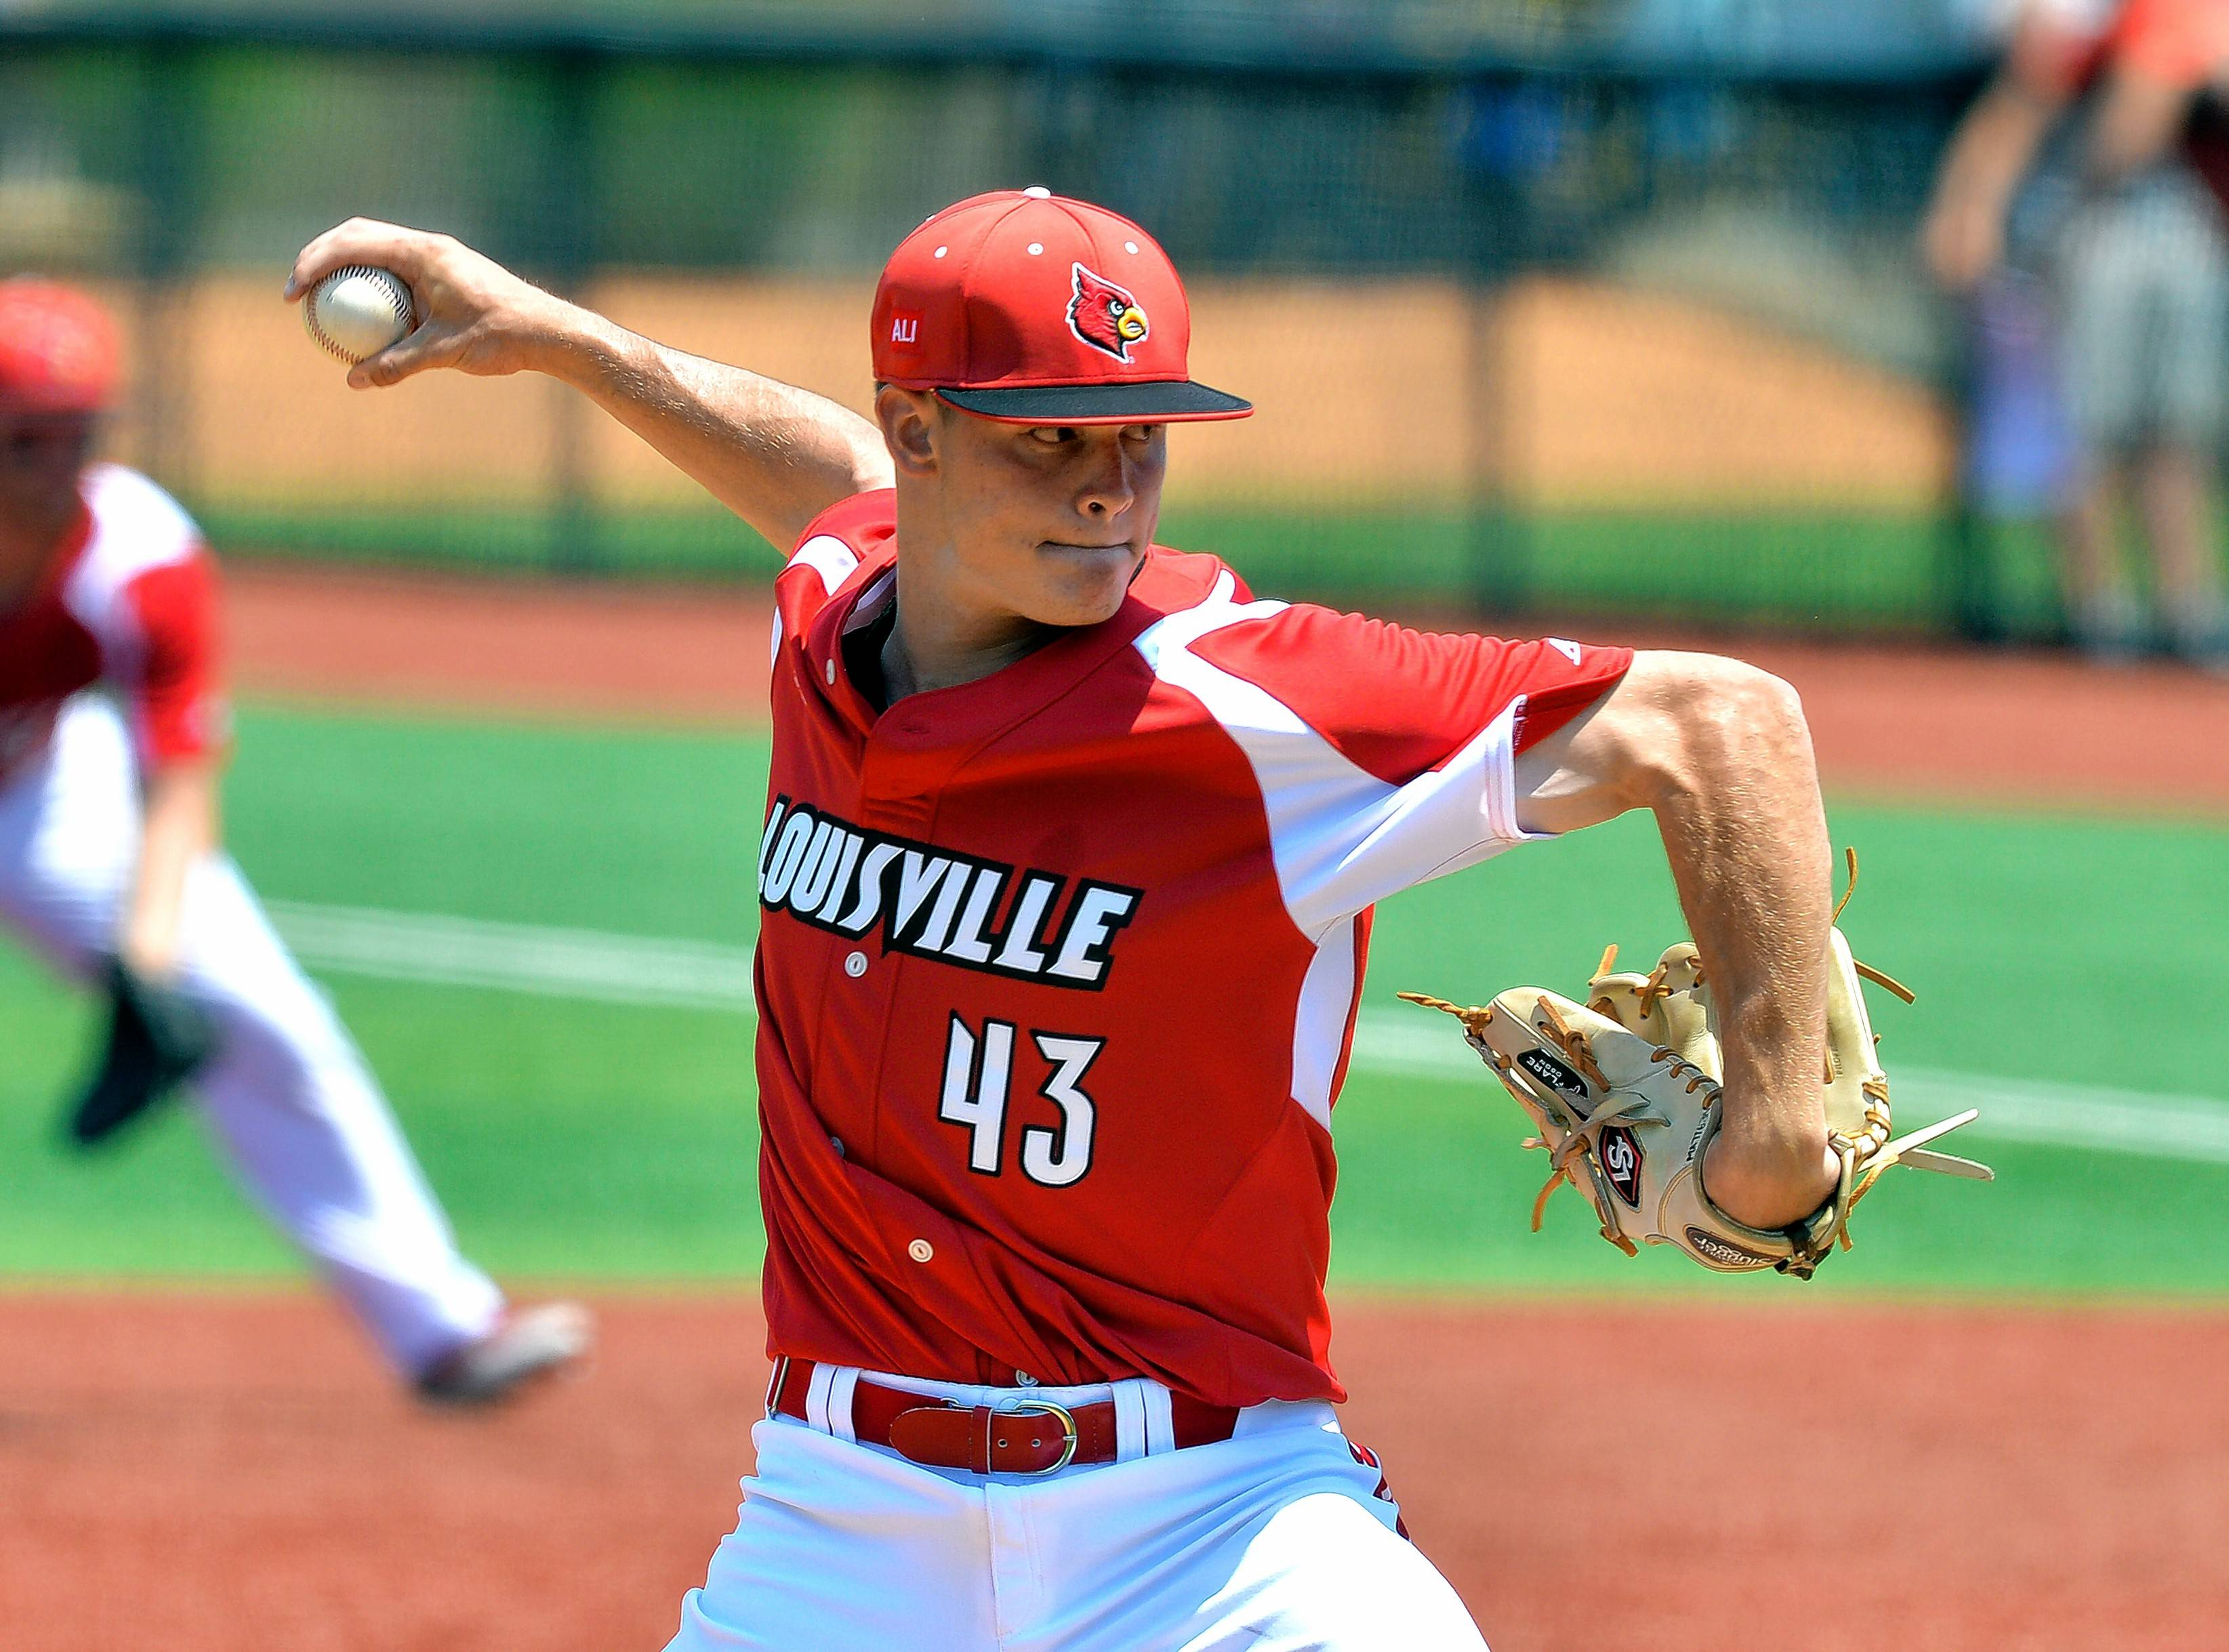 Since being drafted by the White Sox with the No. 26 overall pick in June, Downers Grove native Zack Burdi has pitched very well at four minor-league levels. Burdi might join the Sox when rosters expand in September.